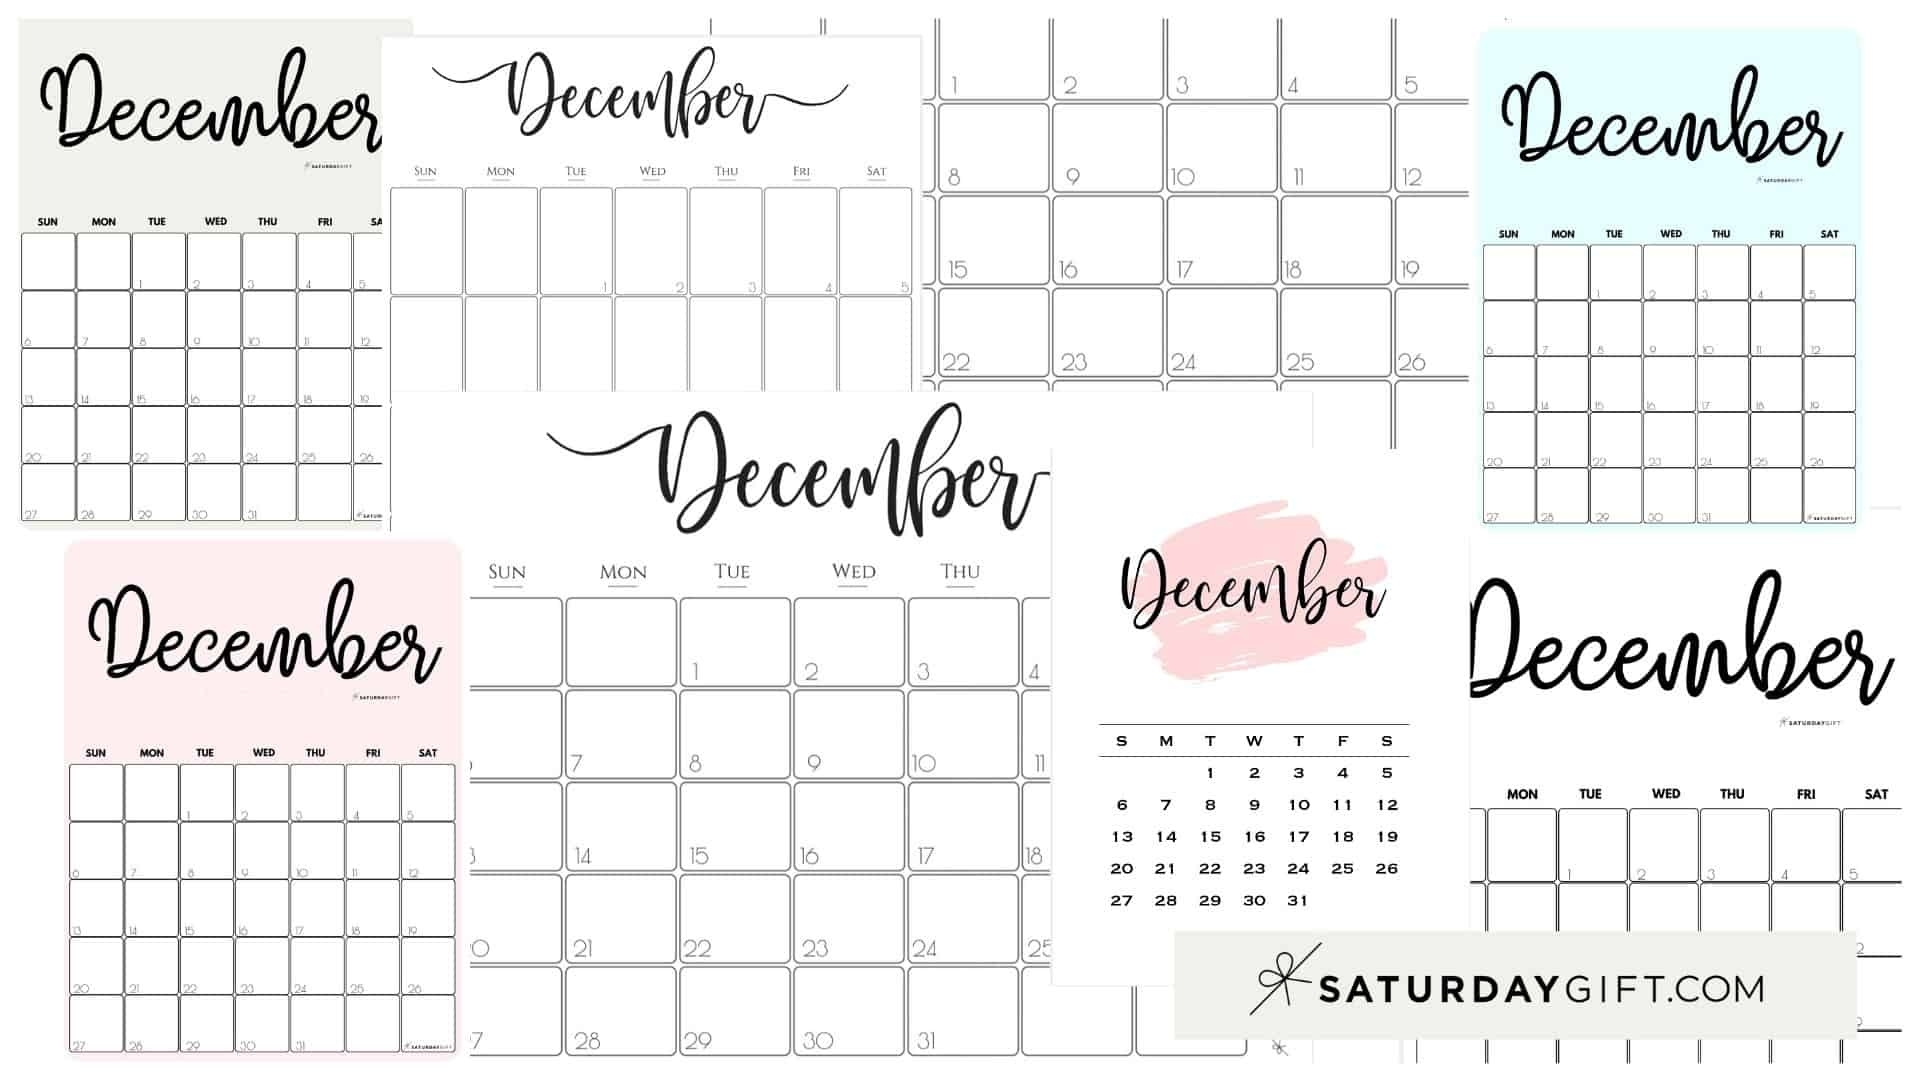 Take Monthly Calenders You Do Not Have To Download